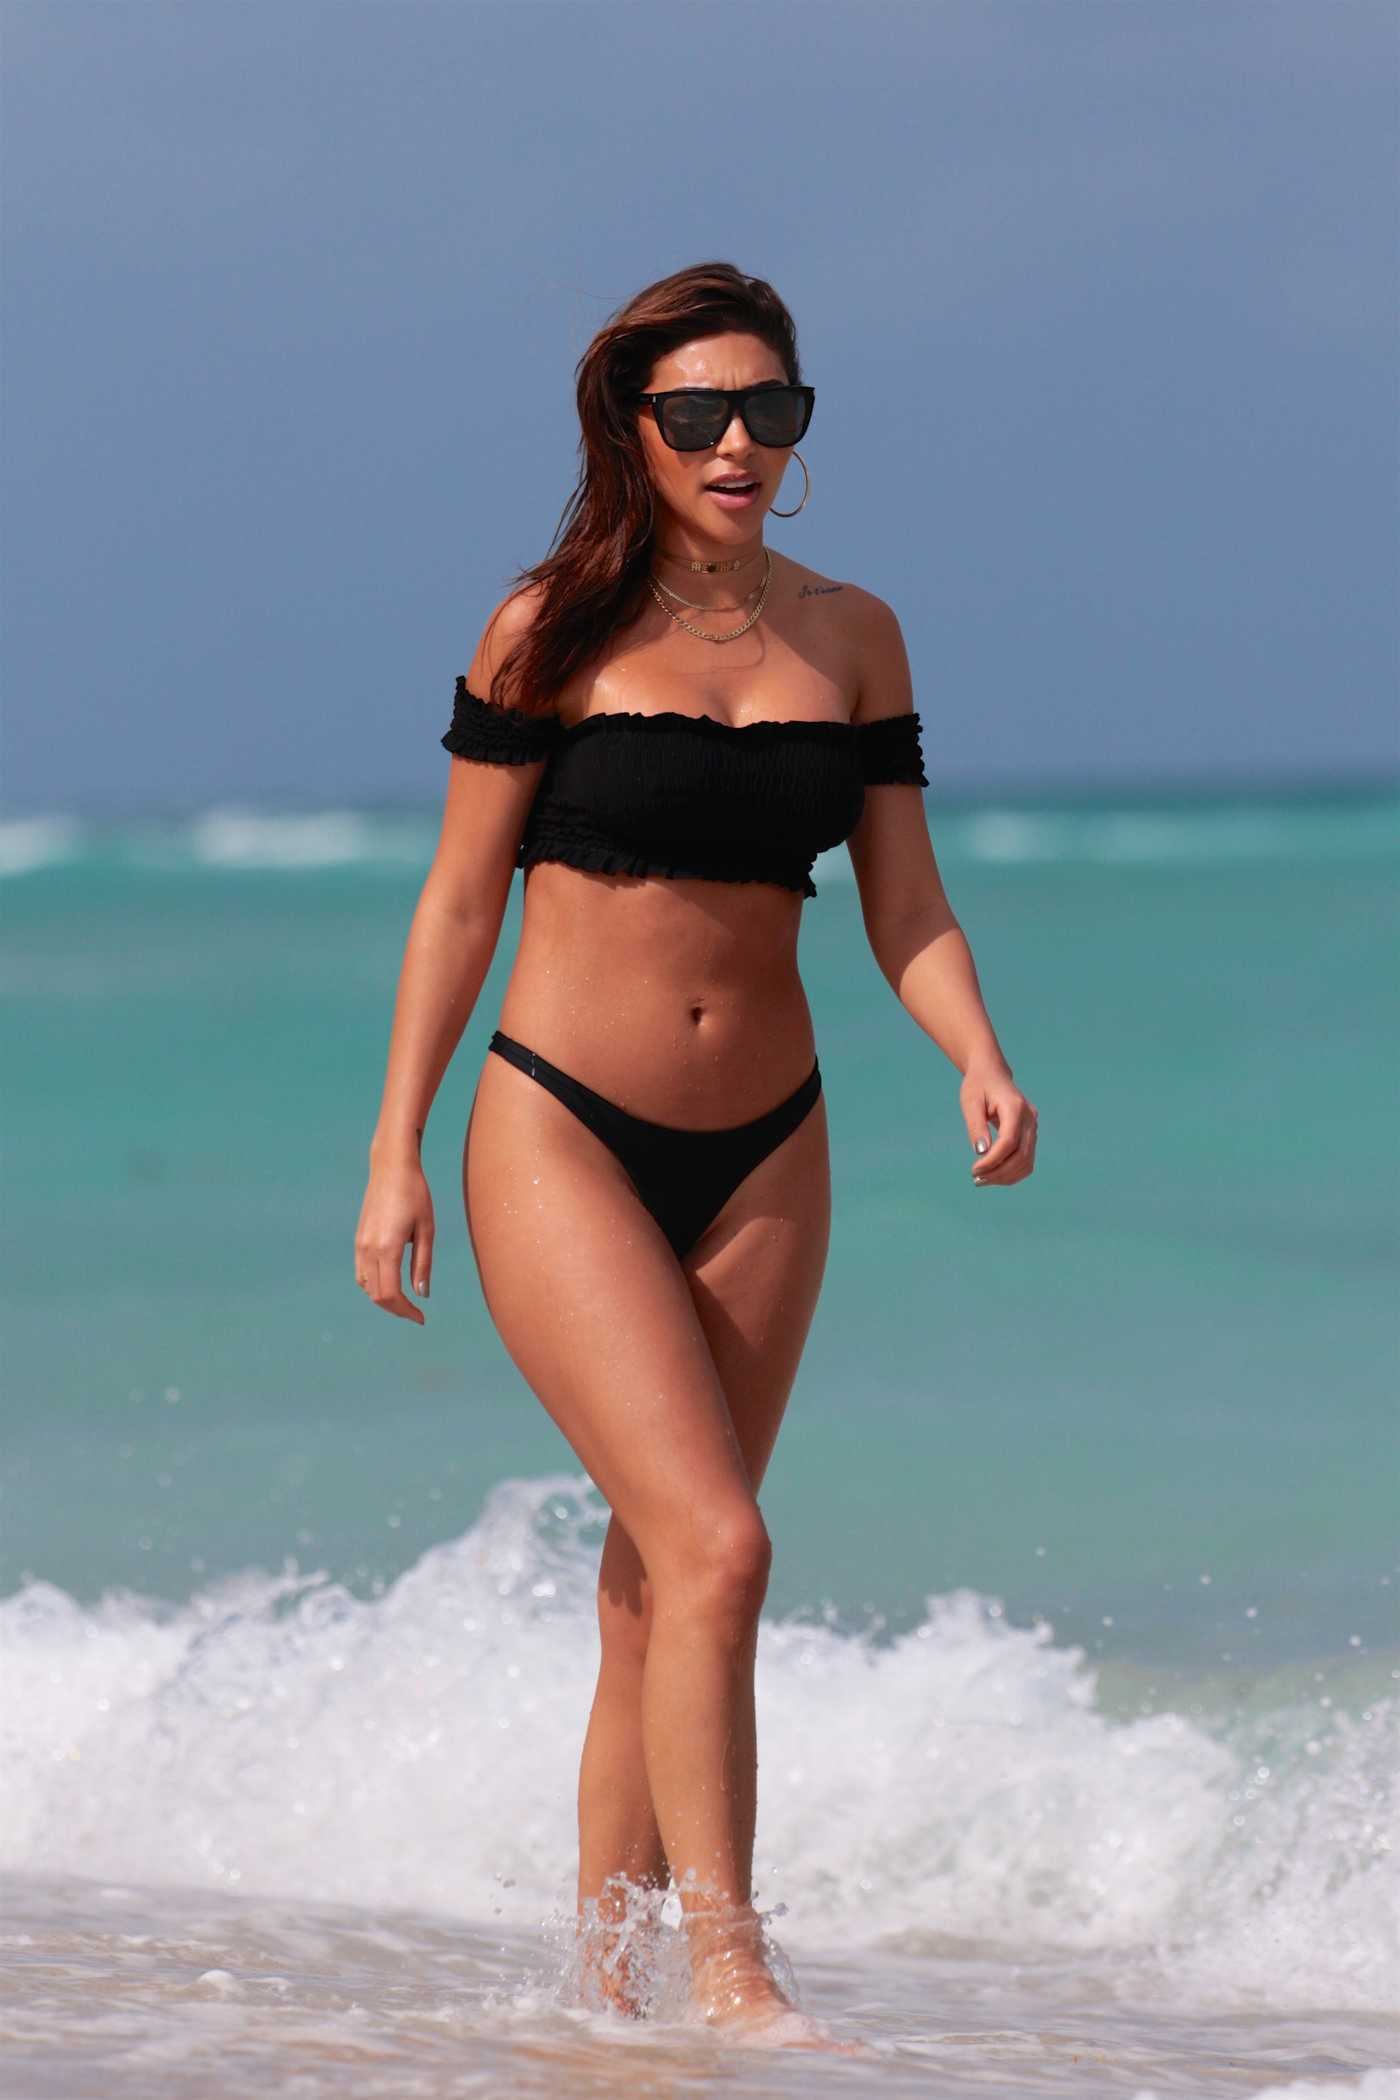 Chantel Jeffries Wears a Black Bikini at the Beach in Miami 03/26/2017